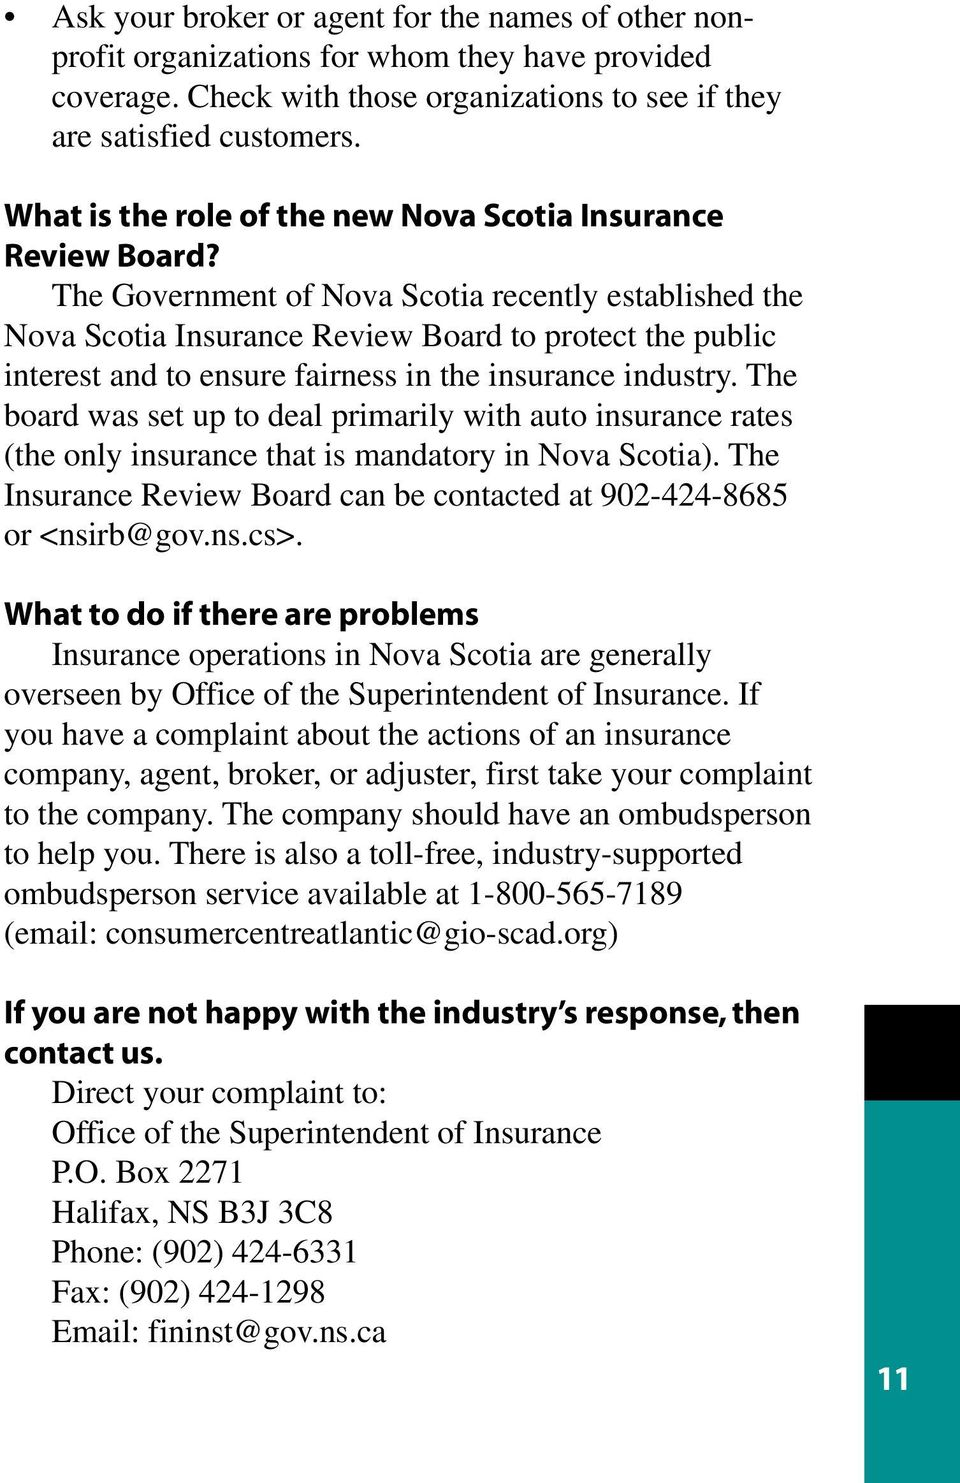 The Government of Nova Scotia recently established the Nova Scotia Insurance Review Board to protect the public interest and to ensure fairness in the insurance industry.